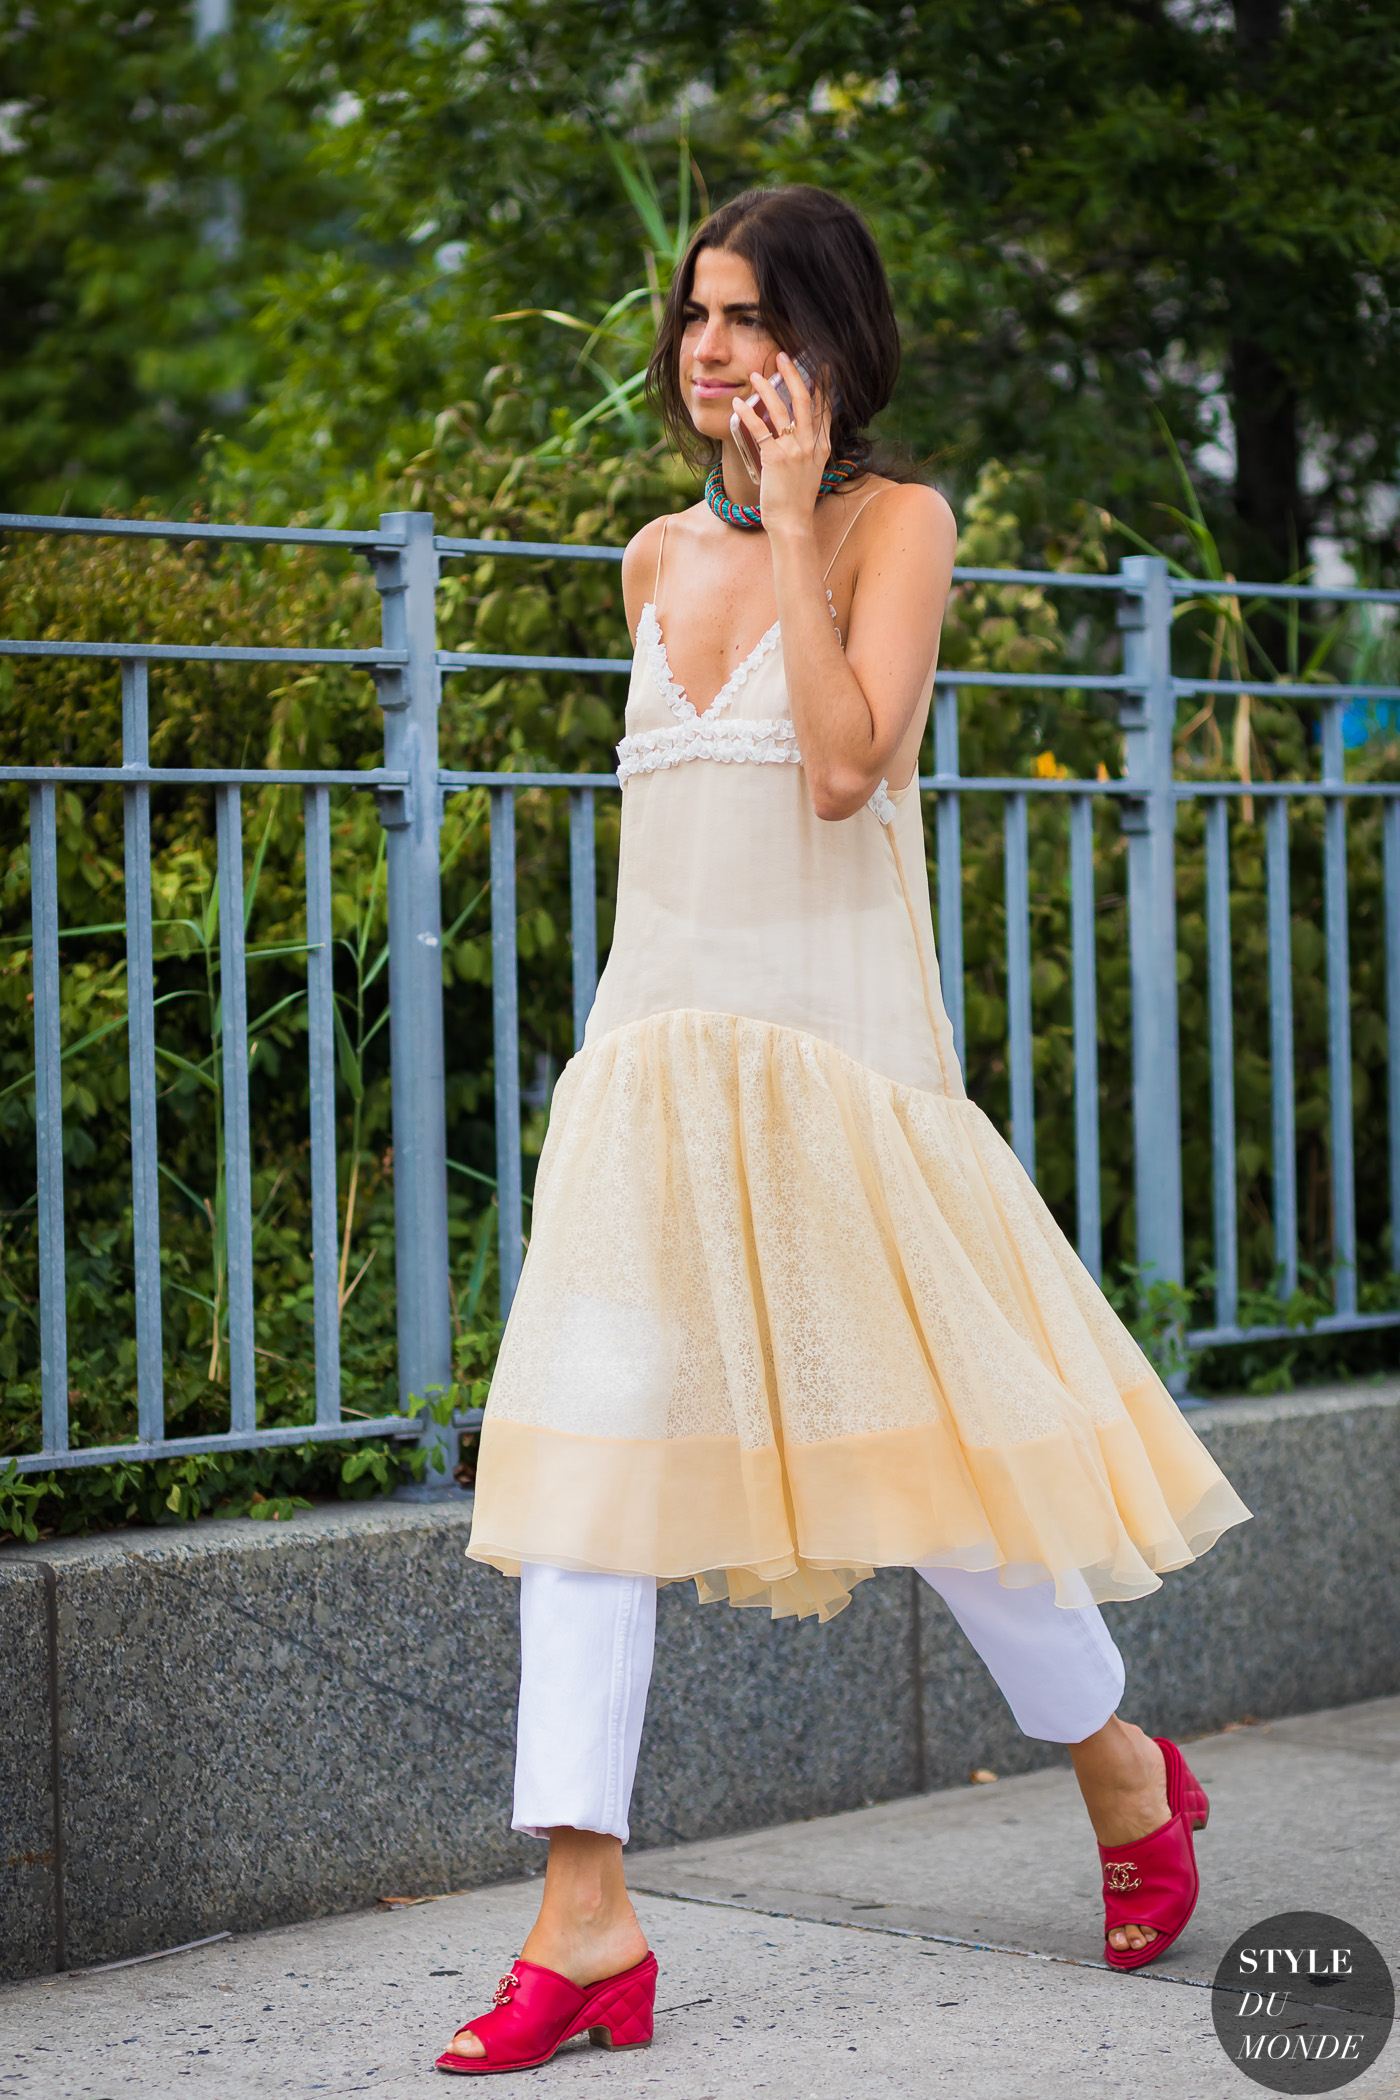 Leandra Medine Man Repeller by STYLEDUMONDE Street Style Fashion Photography948A0820